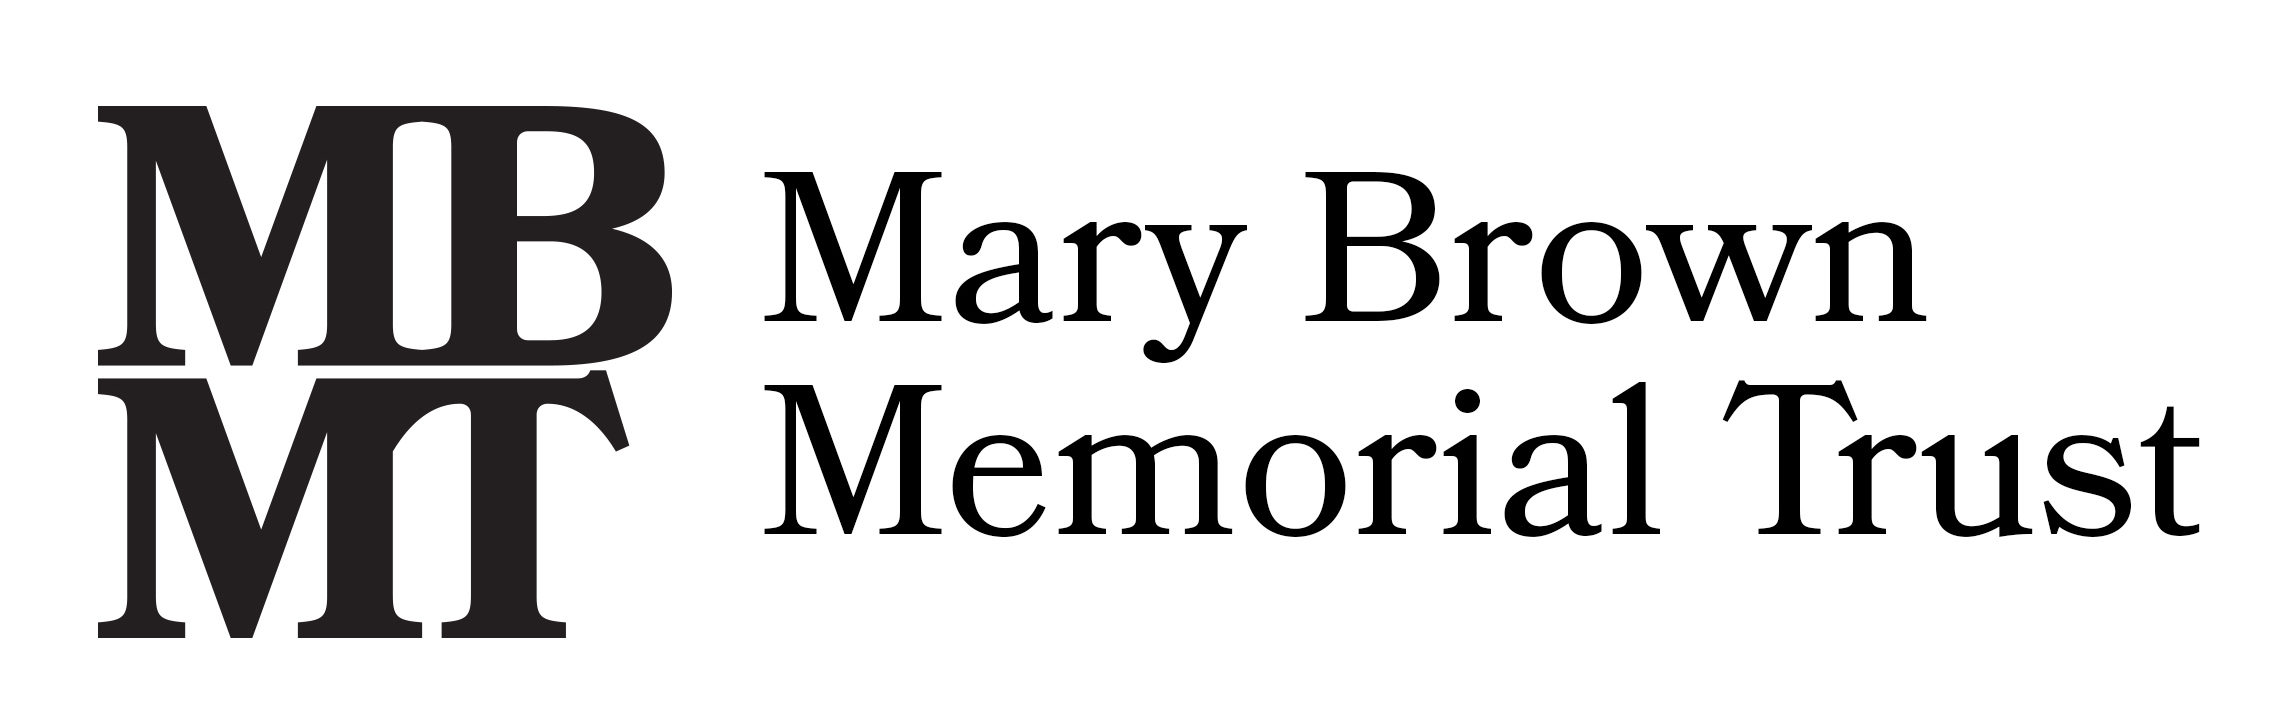 The Mary Brown Memorial Trust